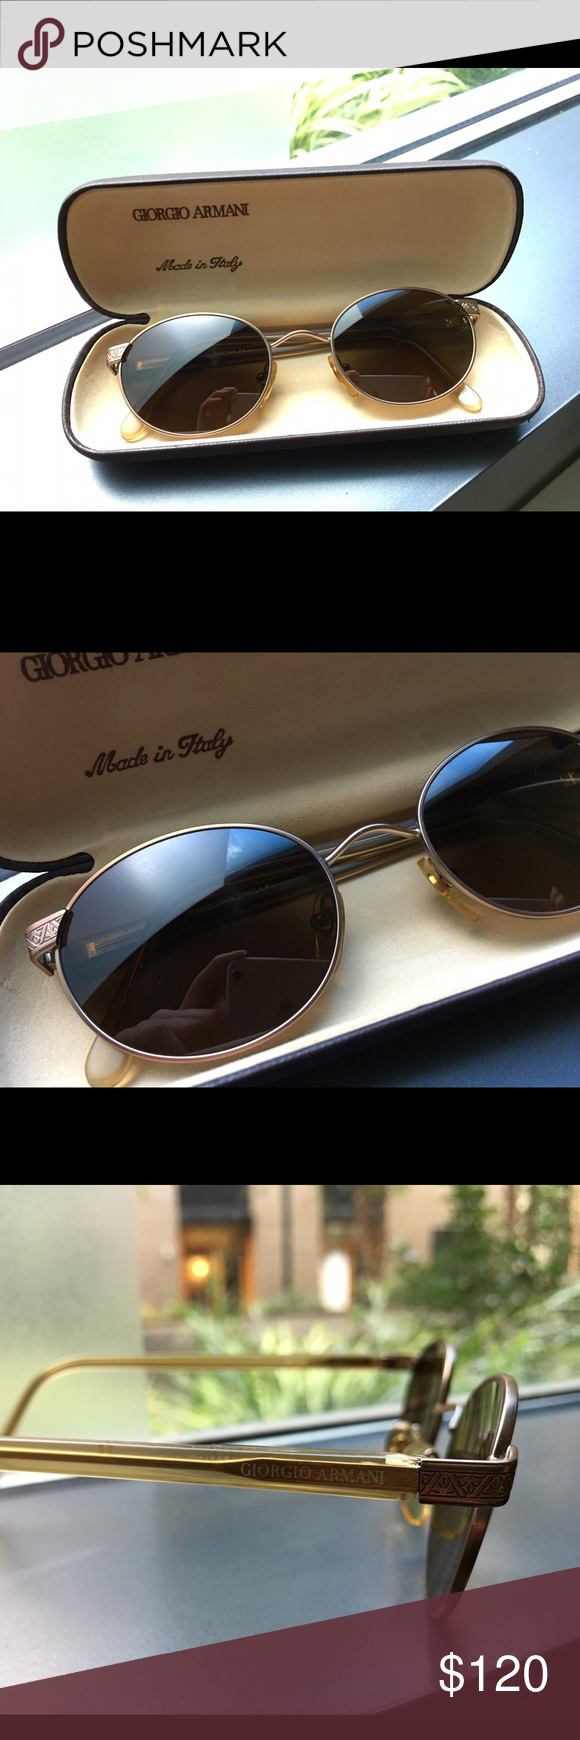 494532c705 Vintage 90s Giorgio Armani Sunglasses Vintage men s sunglasses from the  90s. Nice details on the sides. In good condition. Exterior of the case is  damaged ...